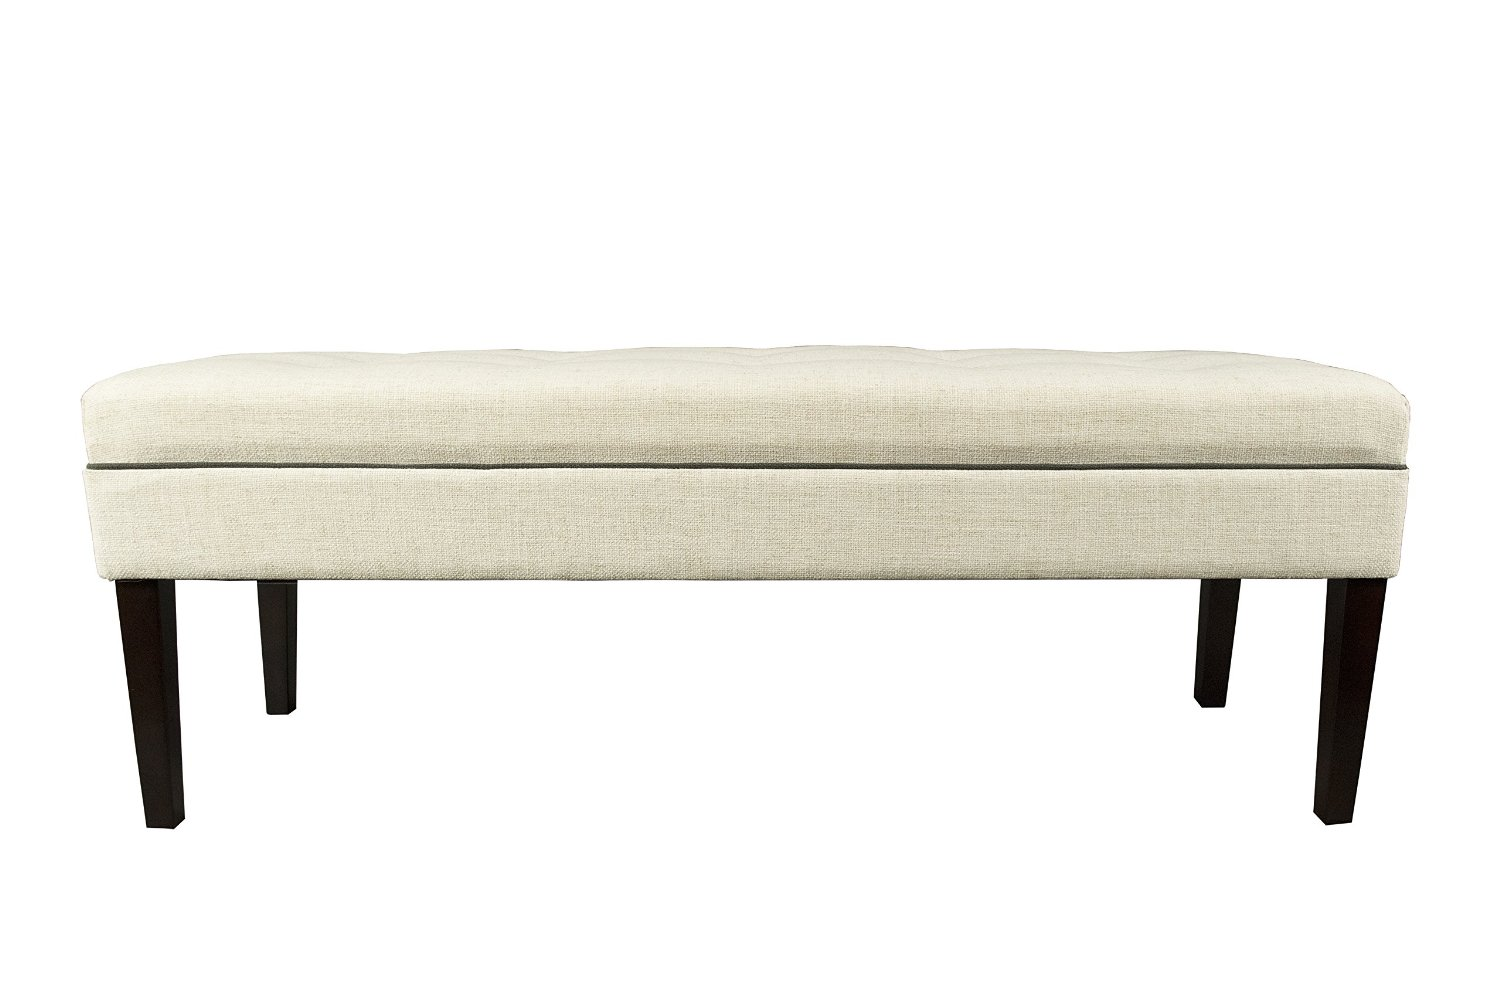 MJL Furniture Designs Kaya Collection Upholstered and Padded Button Tufted Accent Bedroom Bench, Loft Series, Magnolia